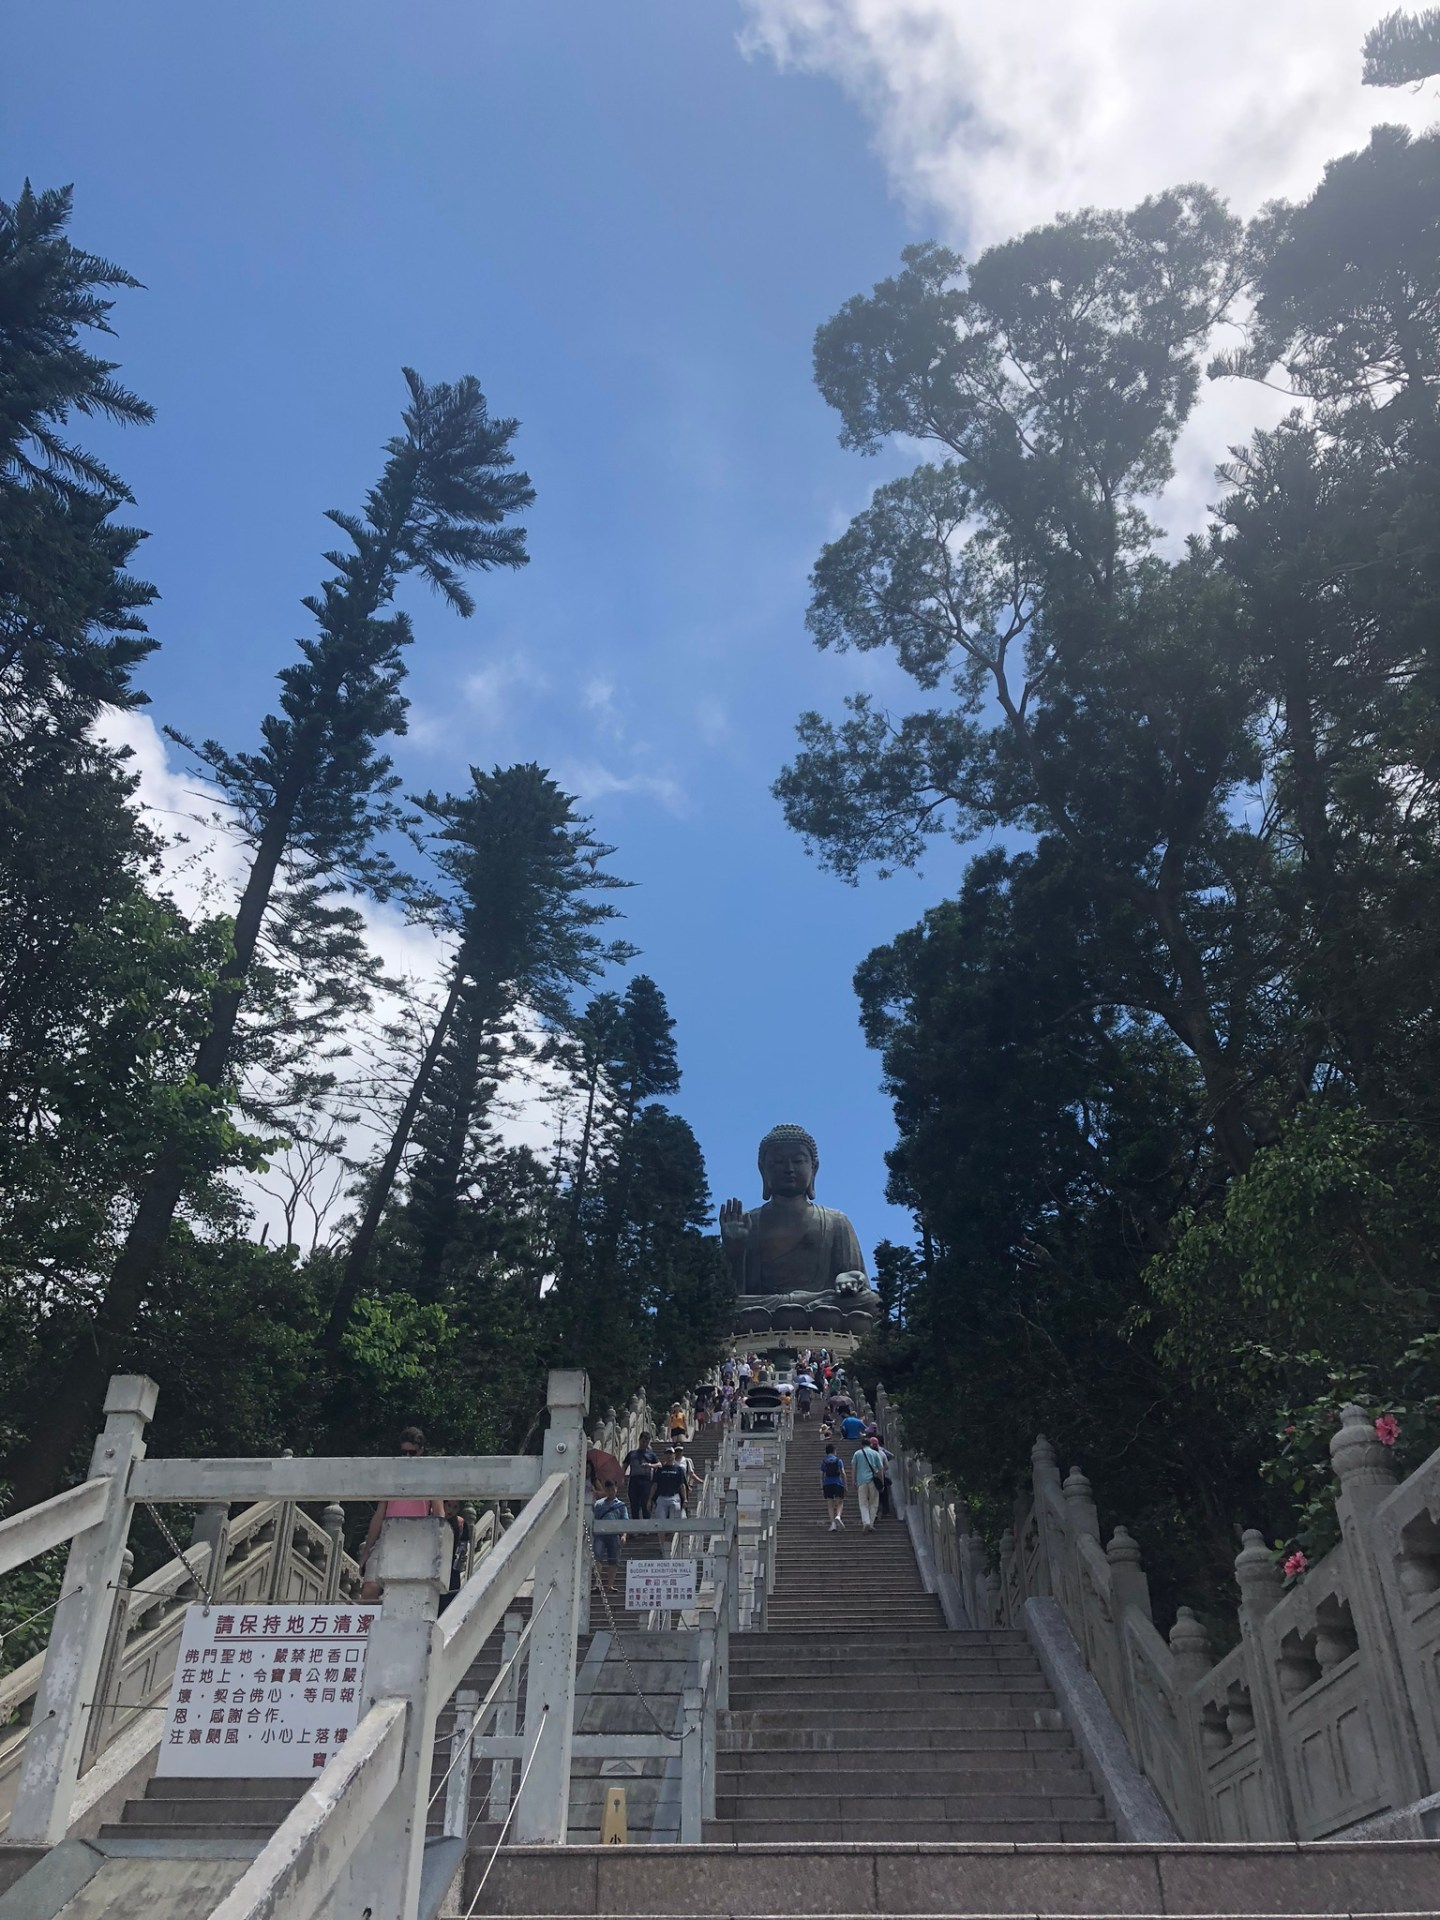 Steps up to Tian Tan Buddha, Lantau Island